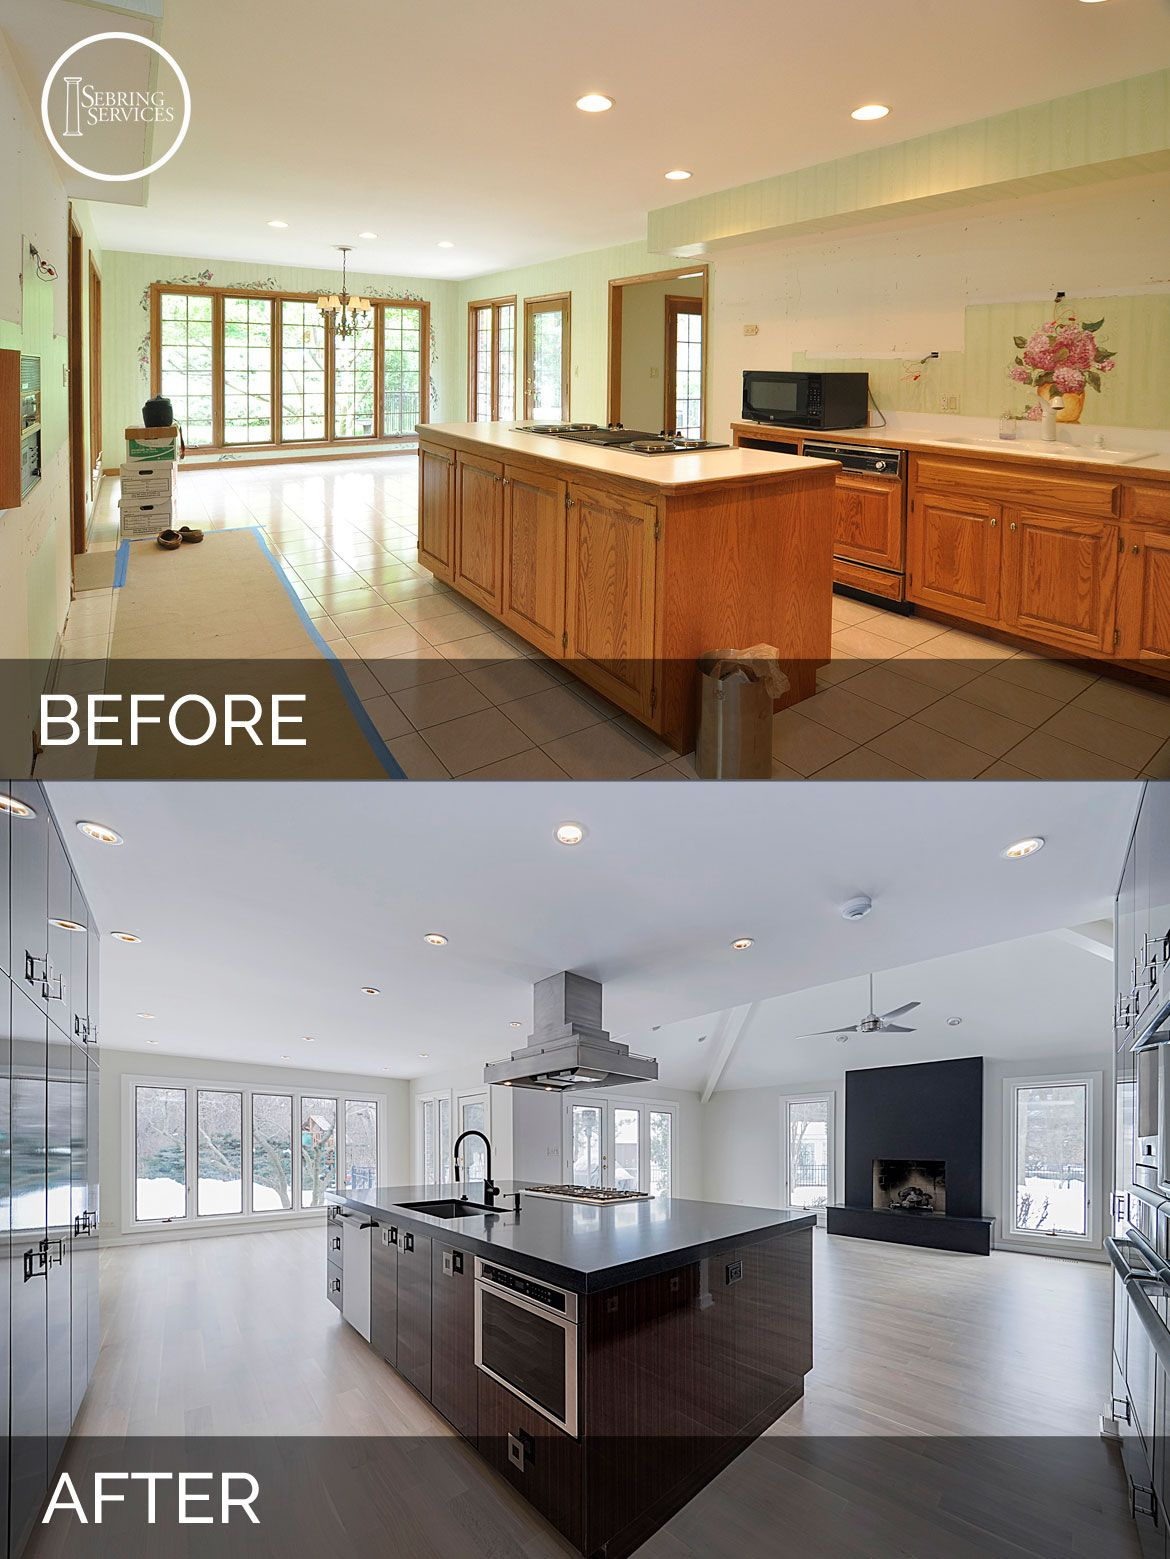 Jeff Betsy S Kitchen Before After Pictures Diy Kitchen Renovation Kitchen Renovation Kitchen Remodel Software